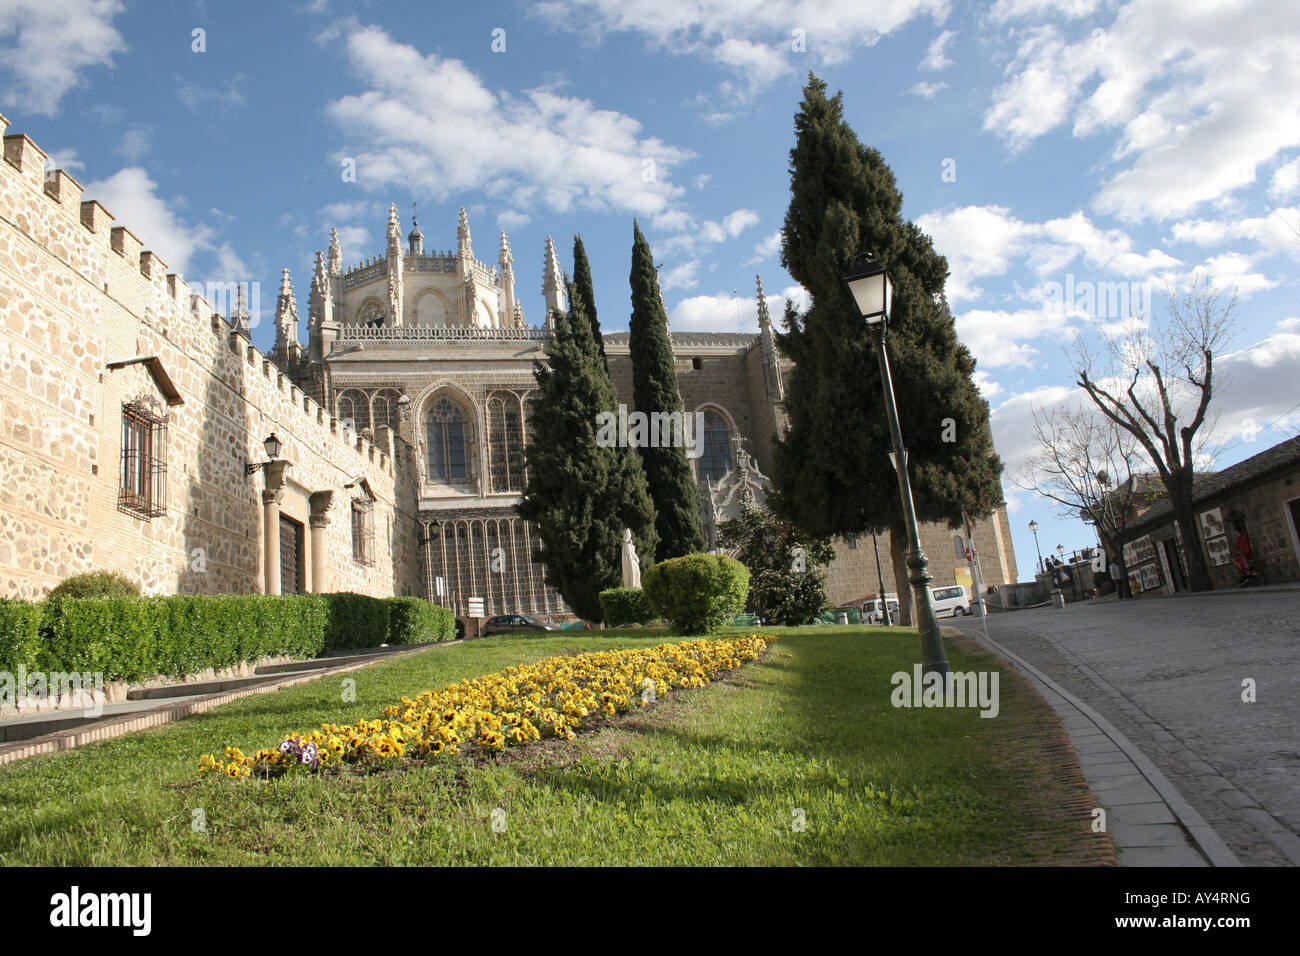 The Monasterio de San Juan de los Reyes in Toledo Spain. - Stock Image